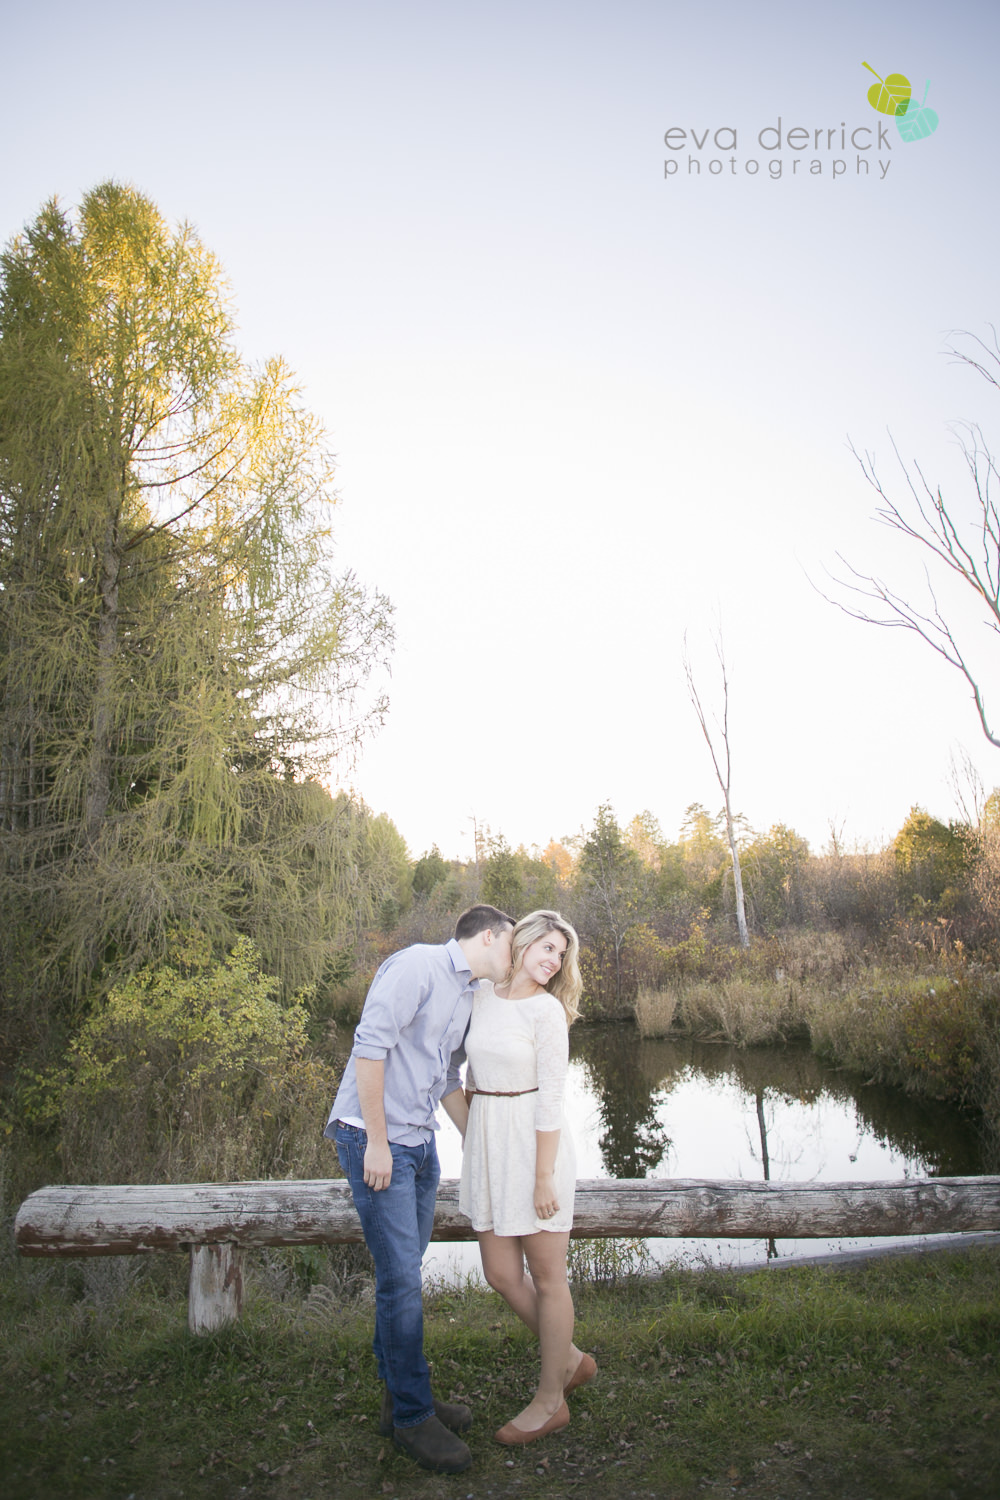 Albion-Hills-Photographer-Engagement-Session-Alanna-Matt-photography-by-Eva-Derrick-Photography-011.JPG